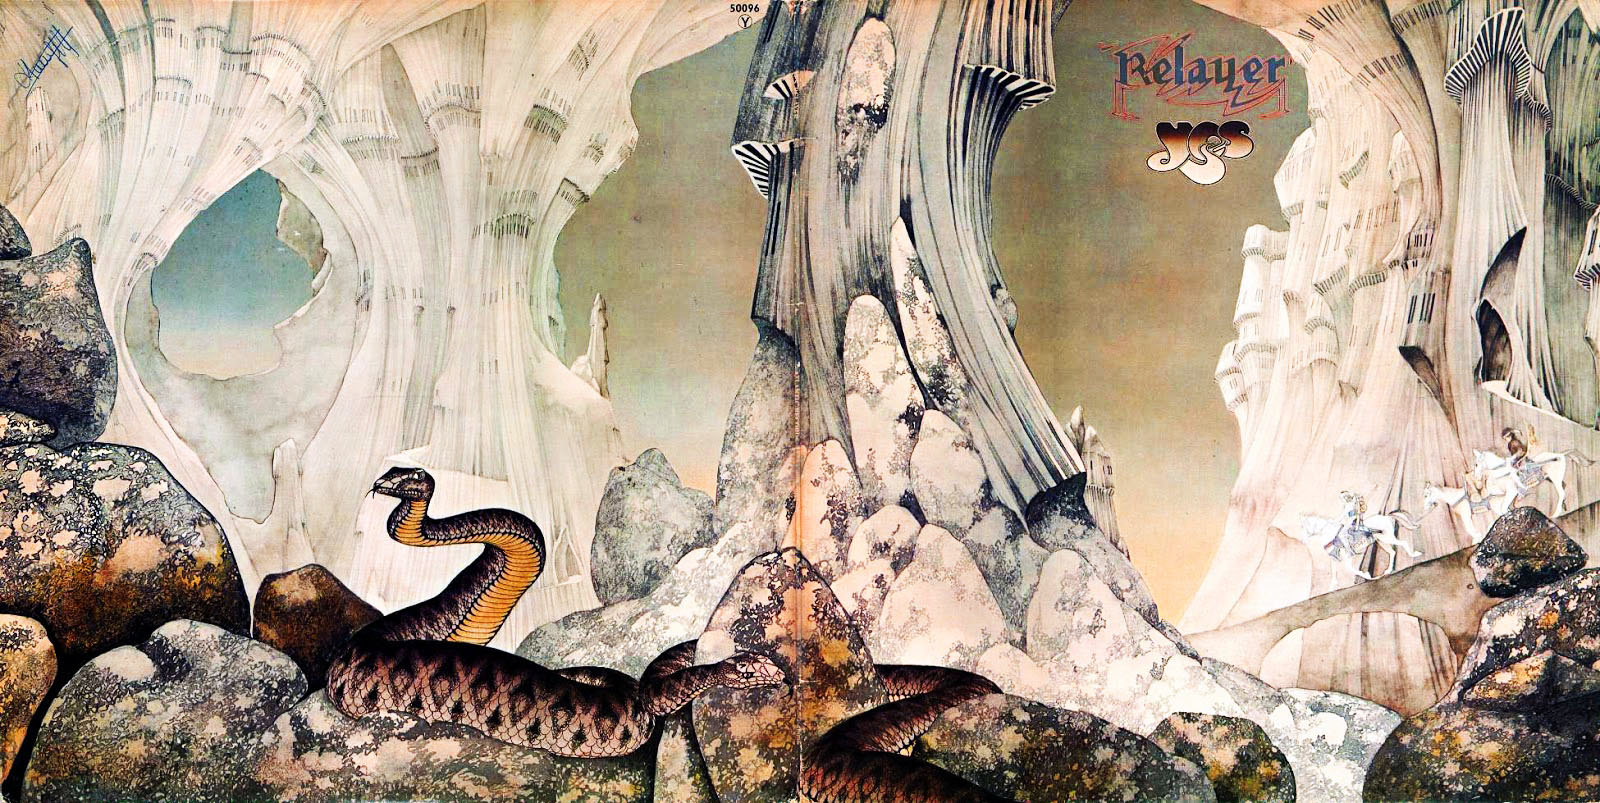 Popdose Prime: Top 10 Roger Dean Album Covers